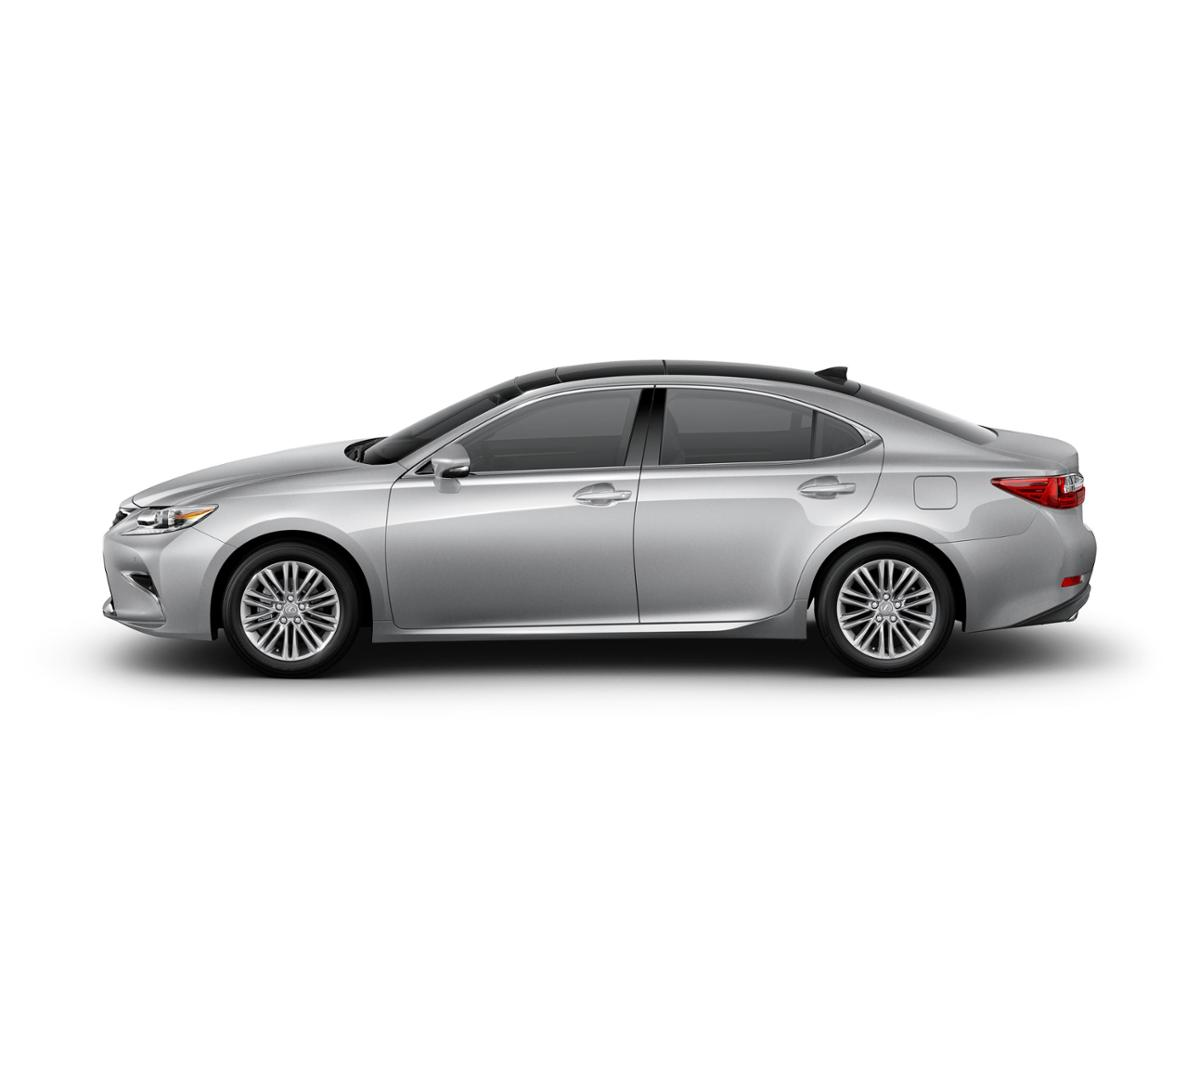 2018 Lexus ES 350 Vehicle Photo in Santa Monica, CA 90404